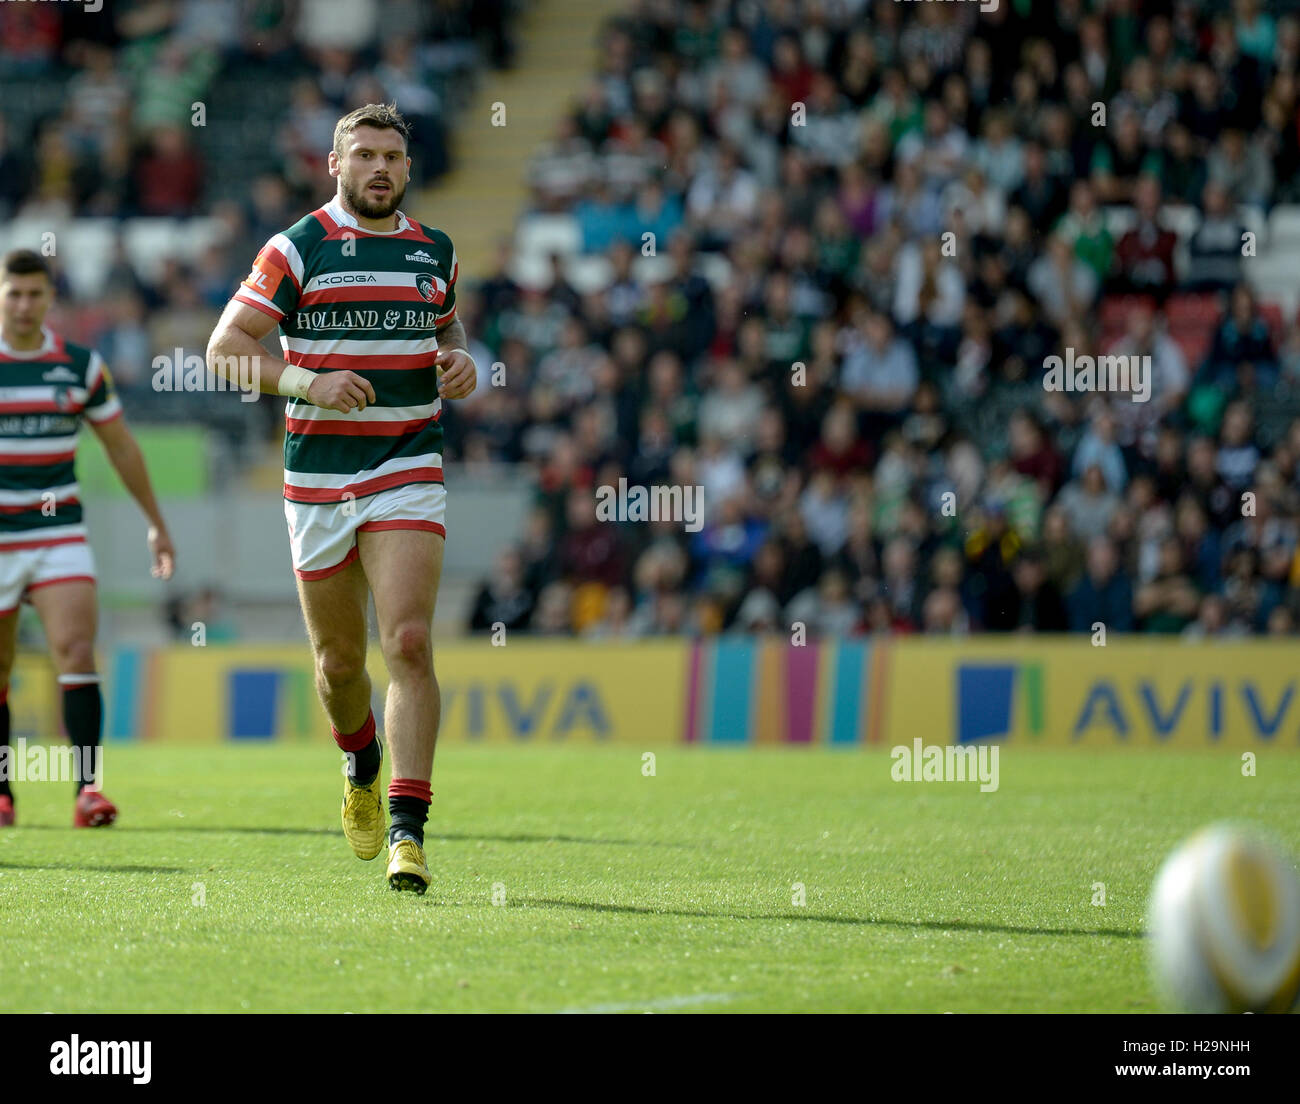 Welford Road Stock Photos & Welford Road Stock Images